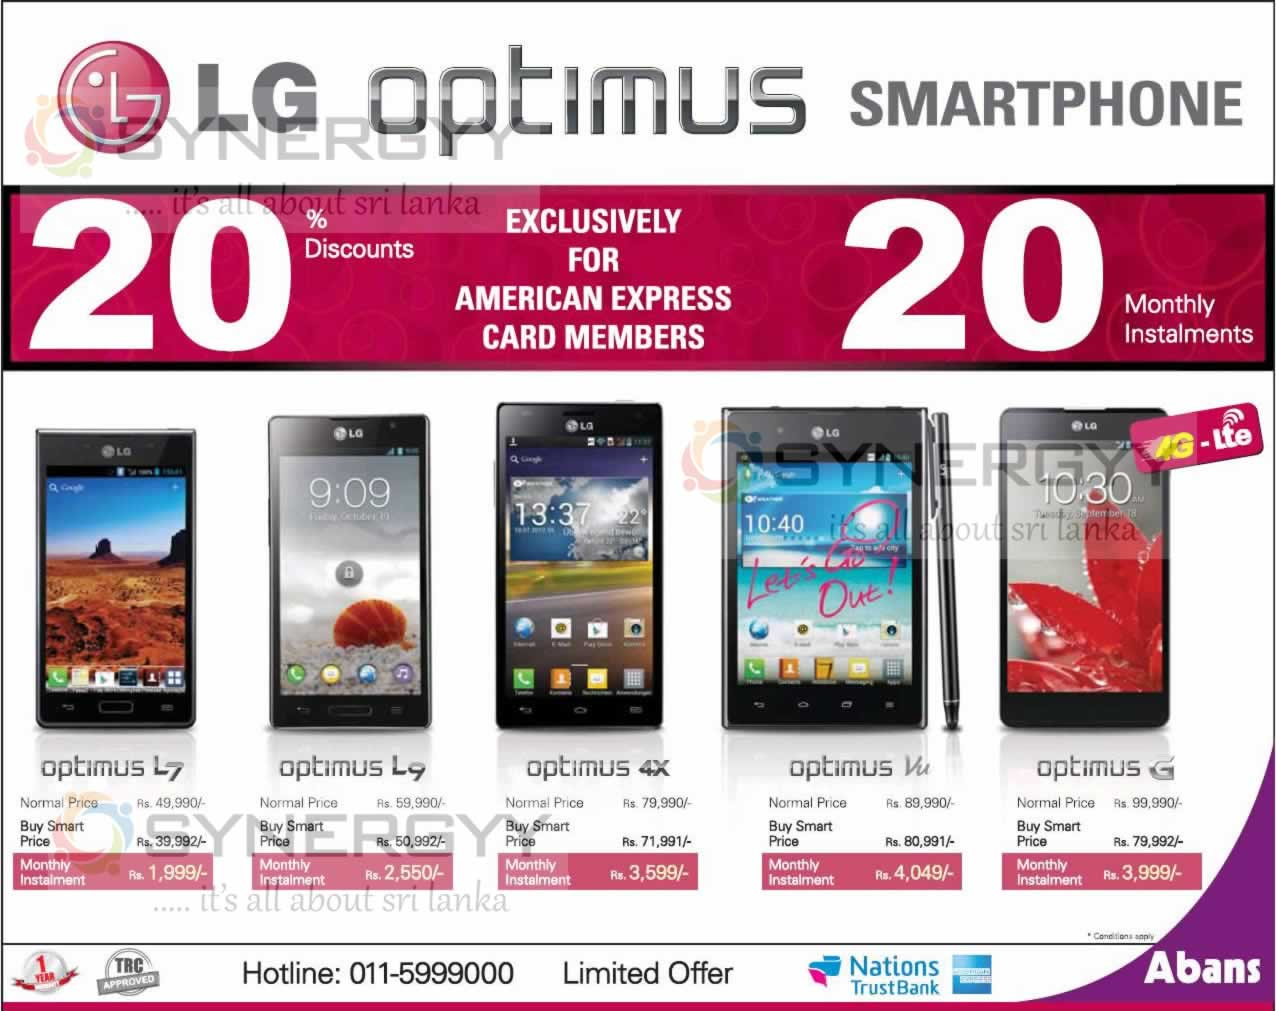 LG Mobile Phones Prices and Promotions in Sri Lanka – SynergyY